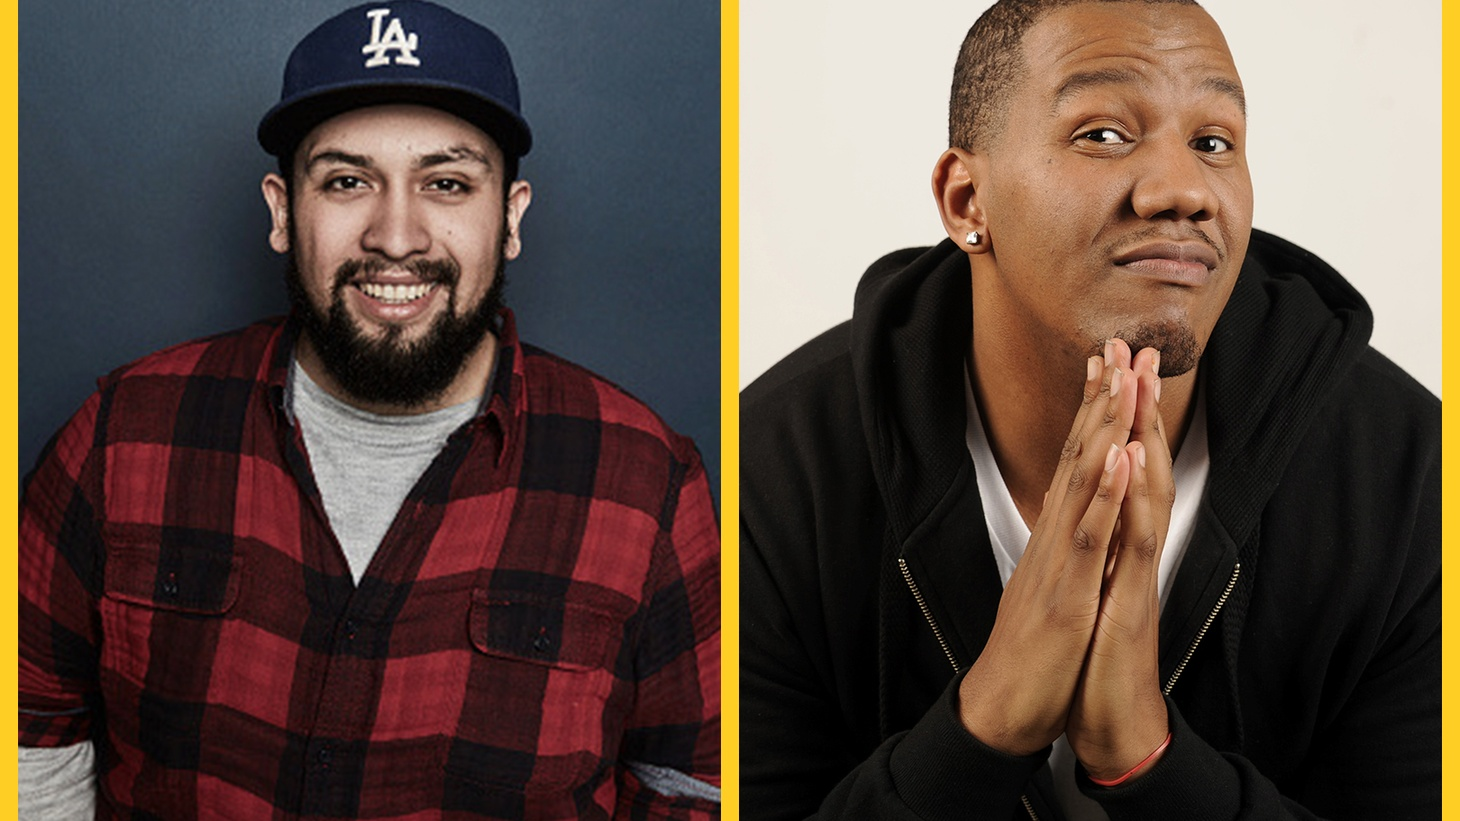 Writers Marvin Lemus and Travon Free solve the world's problems. Or, maybe they don't? Plus, Kanye West, black celebrity, and why Dia de los Muertos is not a Halloween costume.